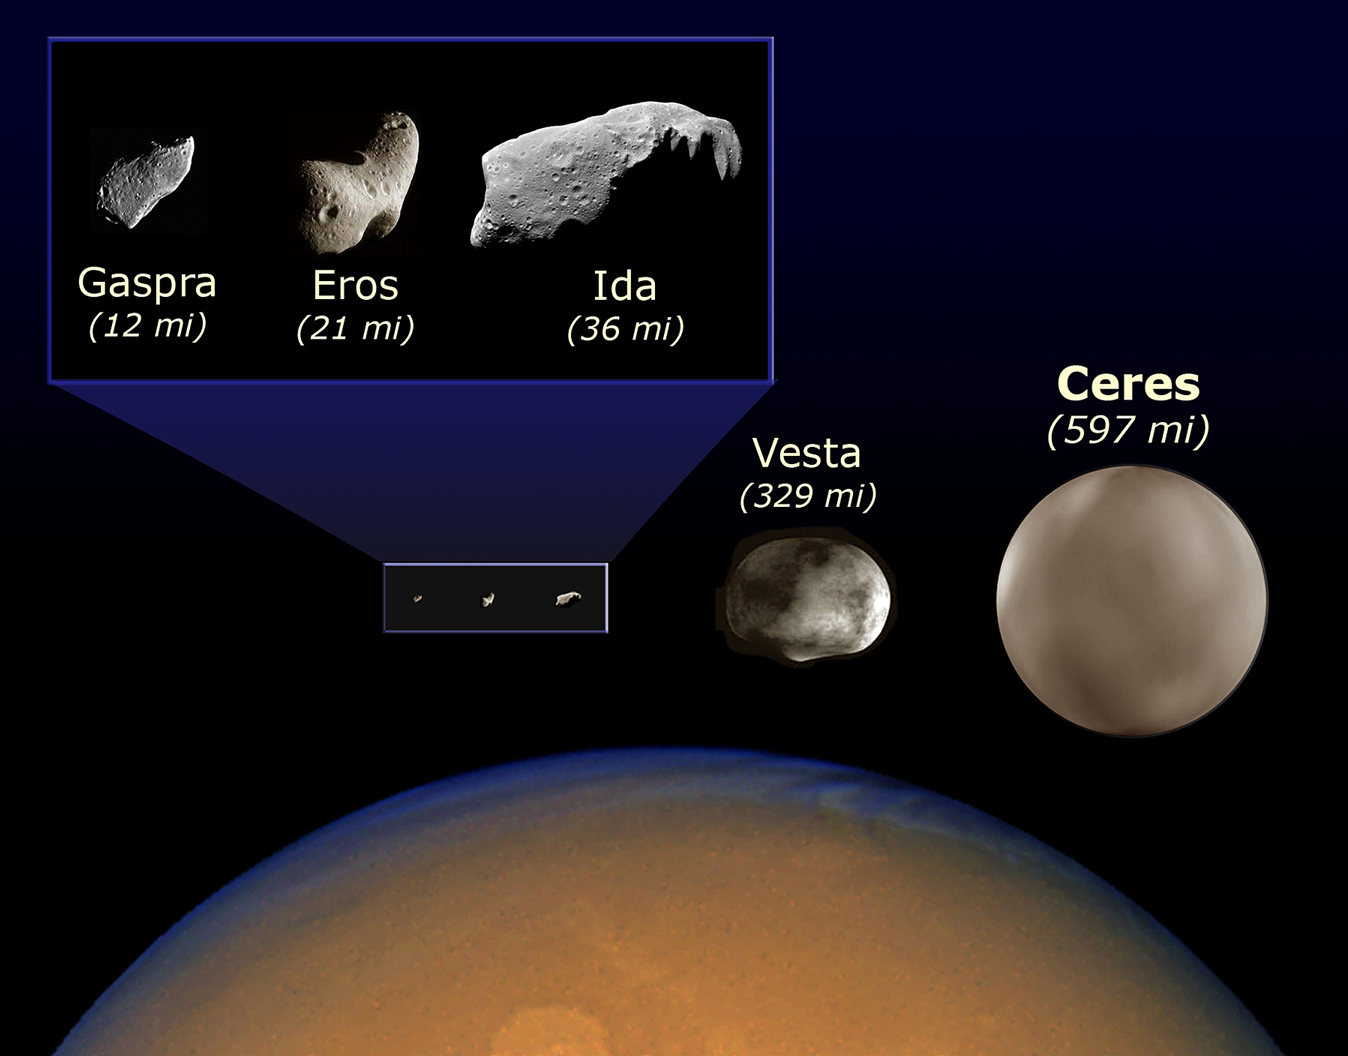 File:Asteroid size comparison.jpg - Wikimedia Commons